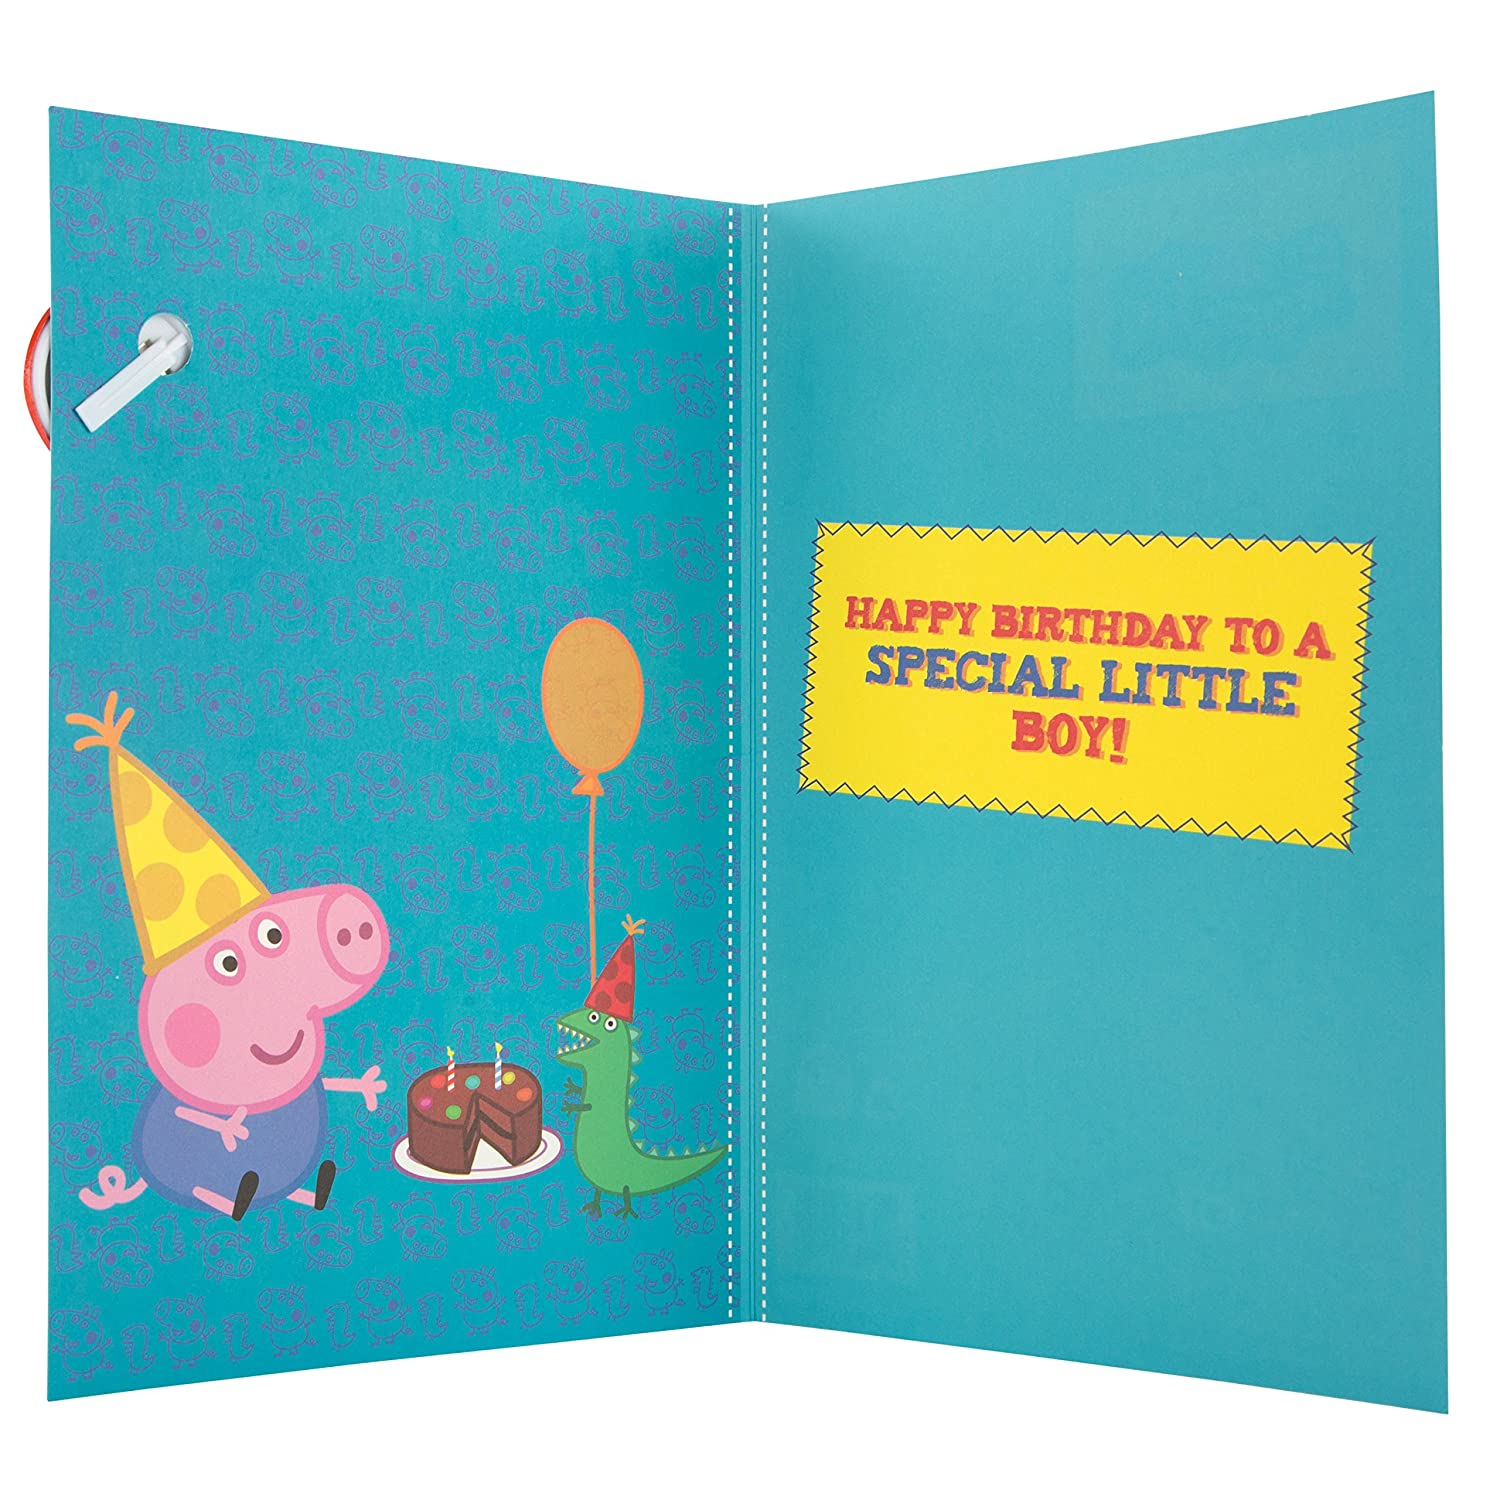 Peppa Pig Grandson Birthday Card with Badge Amazon fice